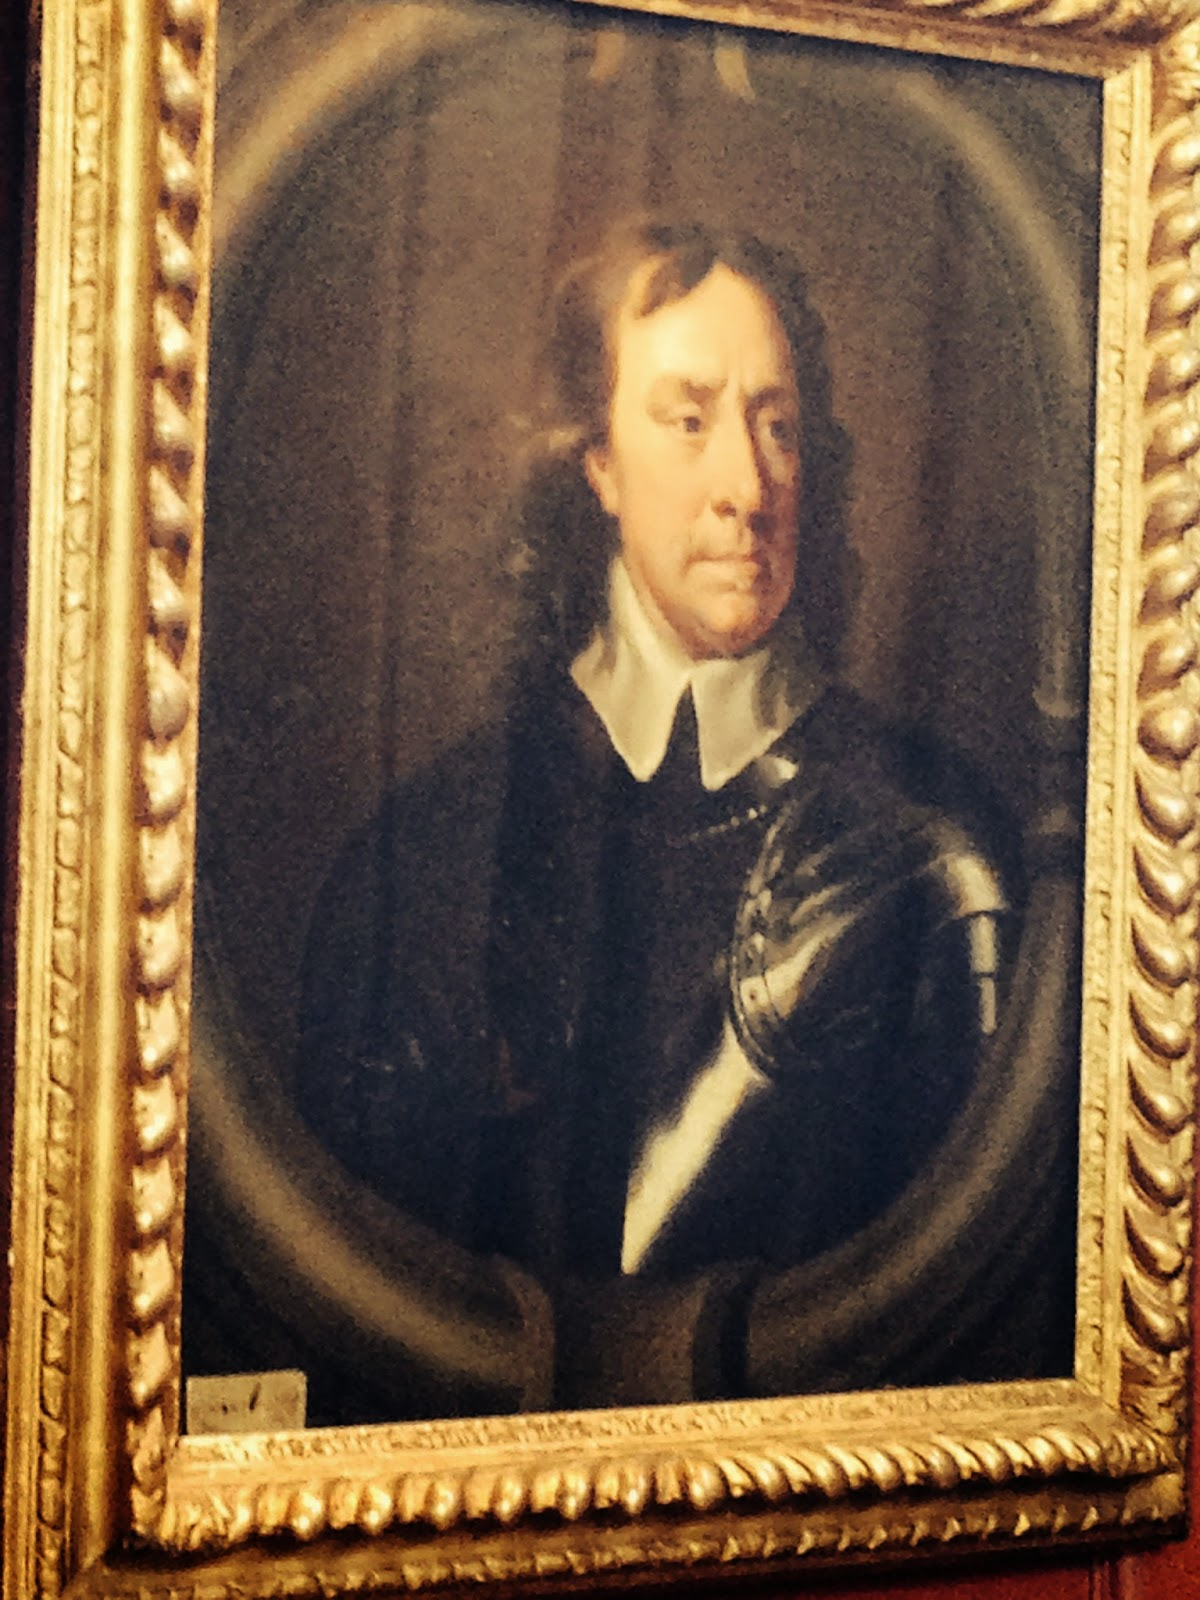 oxford cambridge boat race nyc  portrait of oliver cromwell 1599 1658 hanging in hall at sidney sussex college cambridge photo by jt marlin 2014